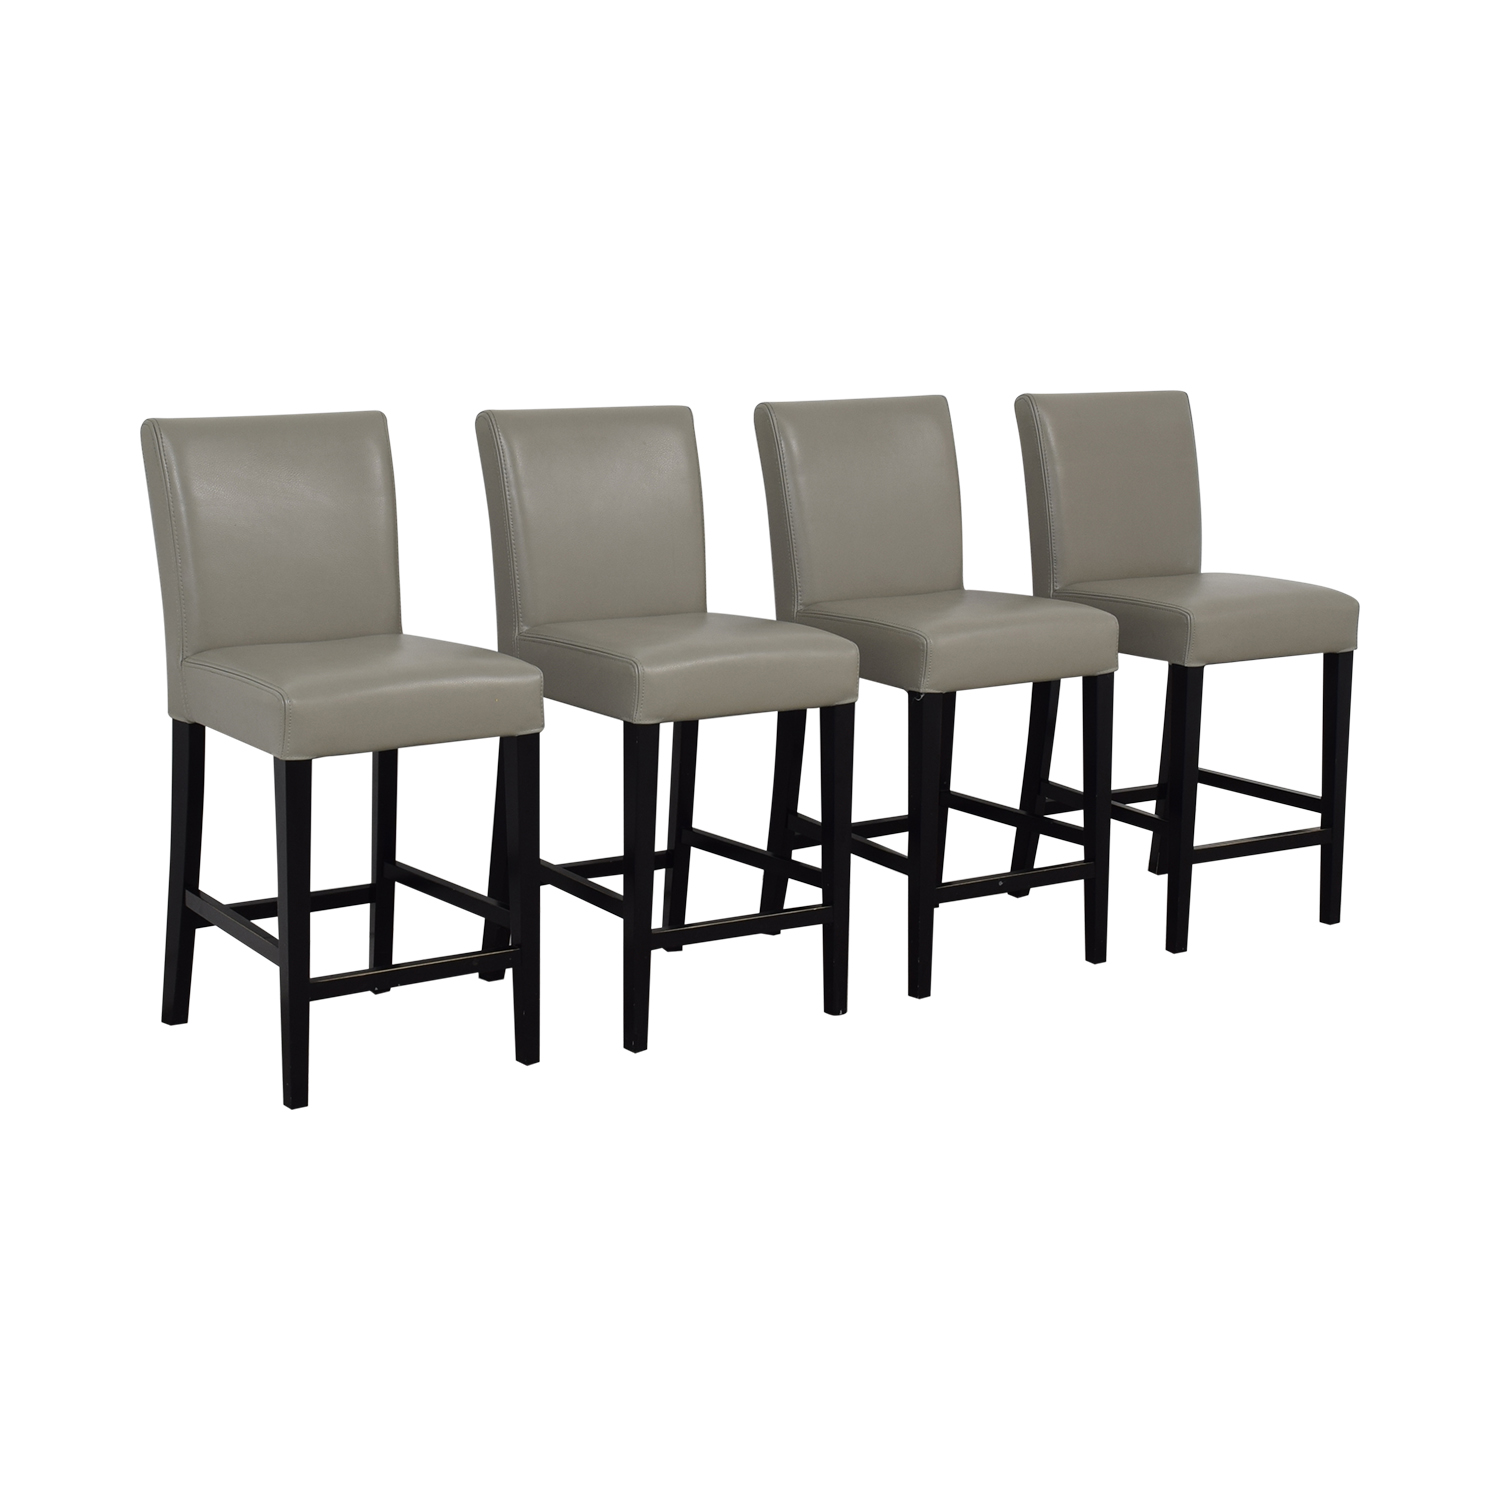 Grey Leather Stools on sale